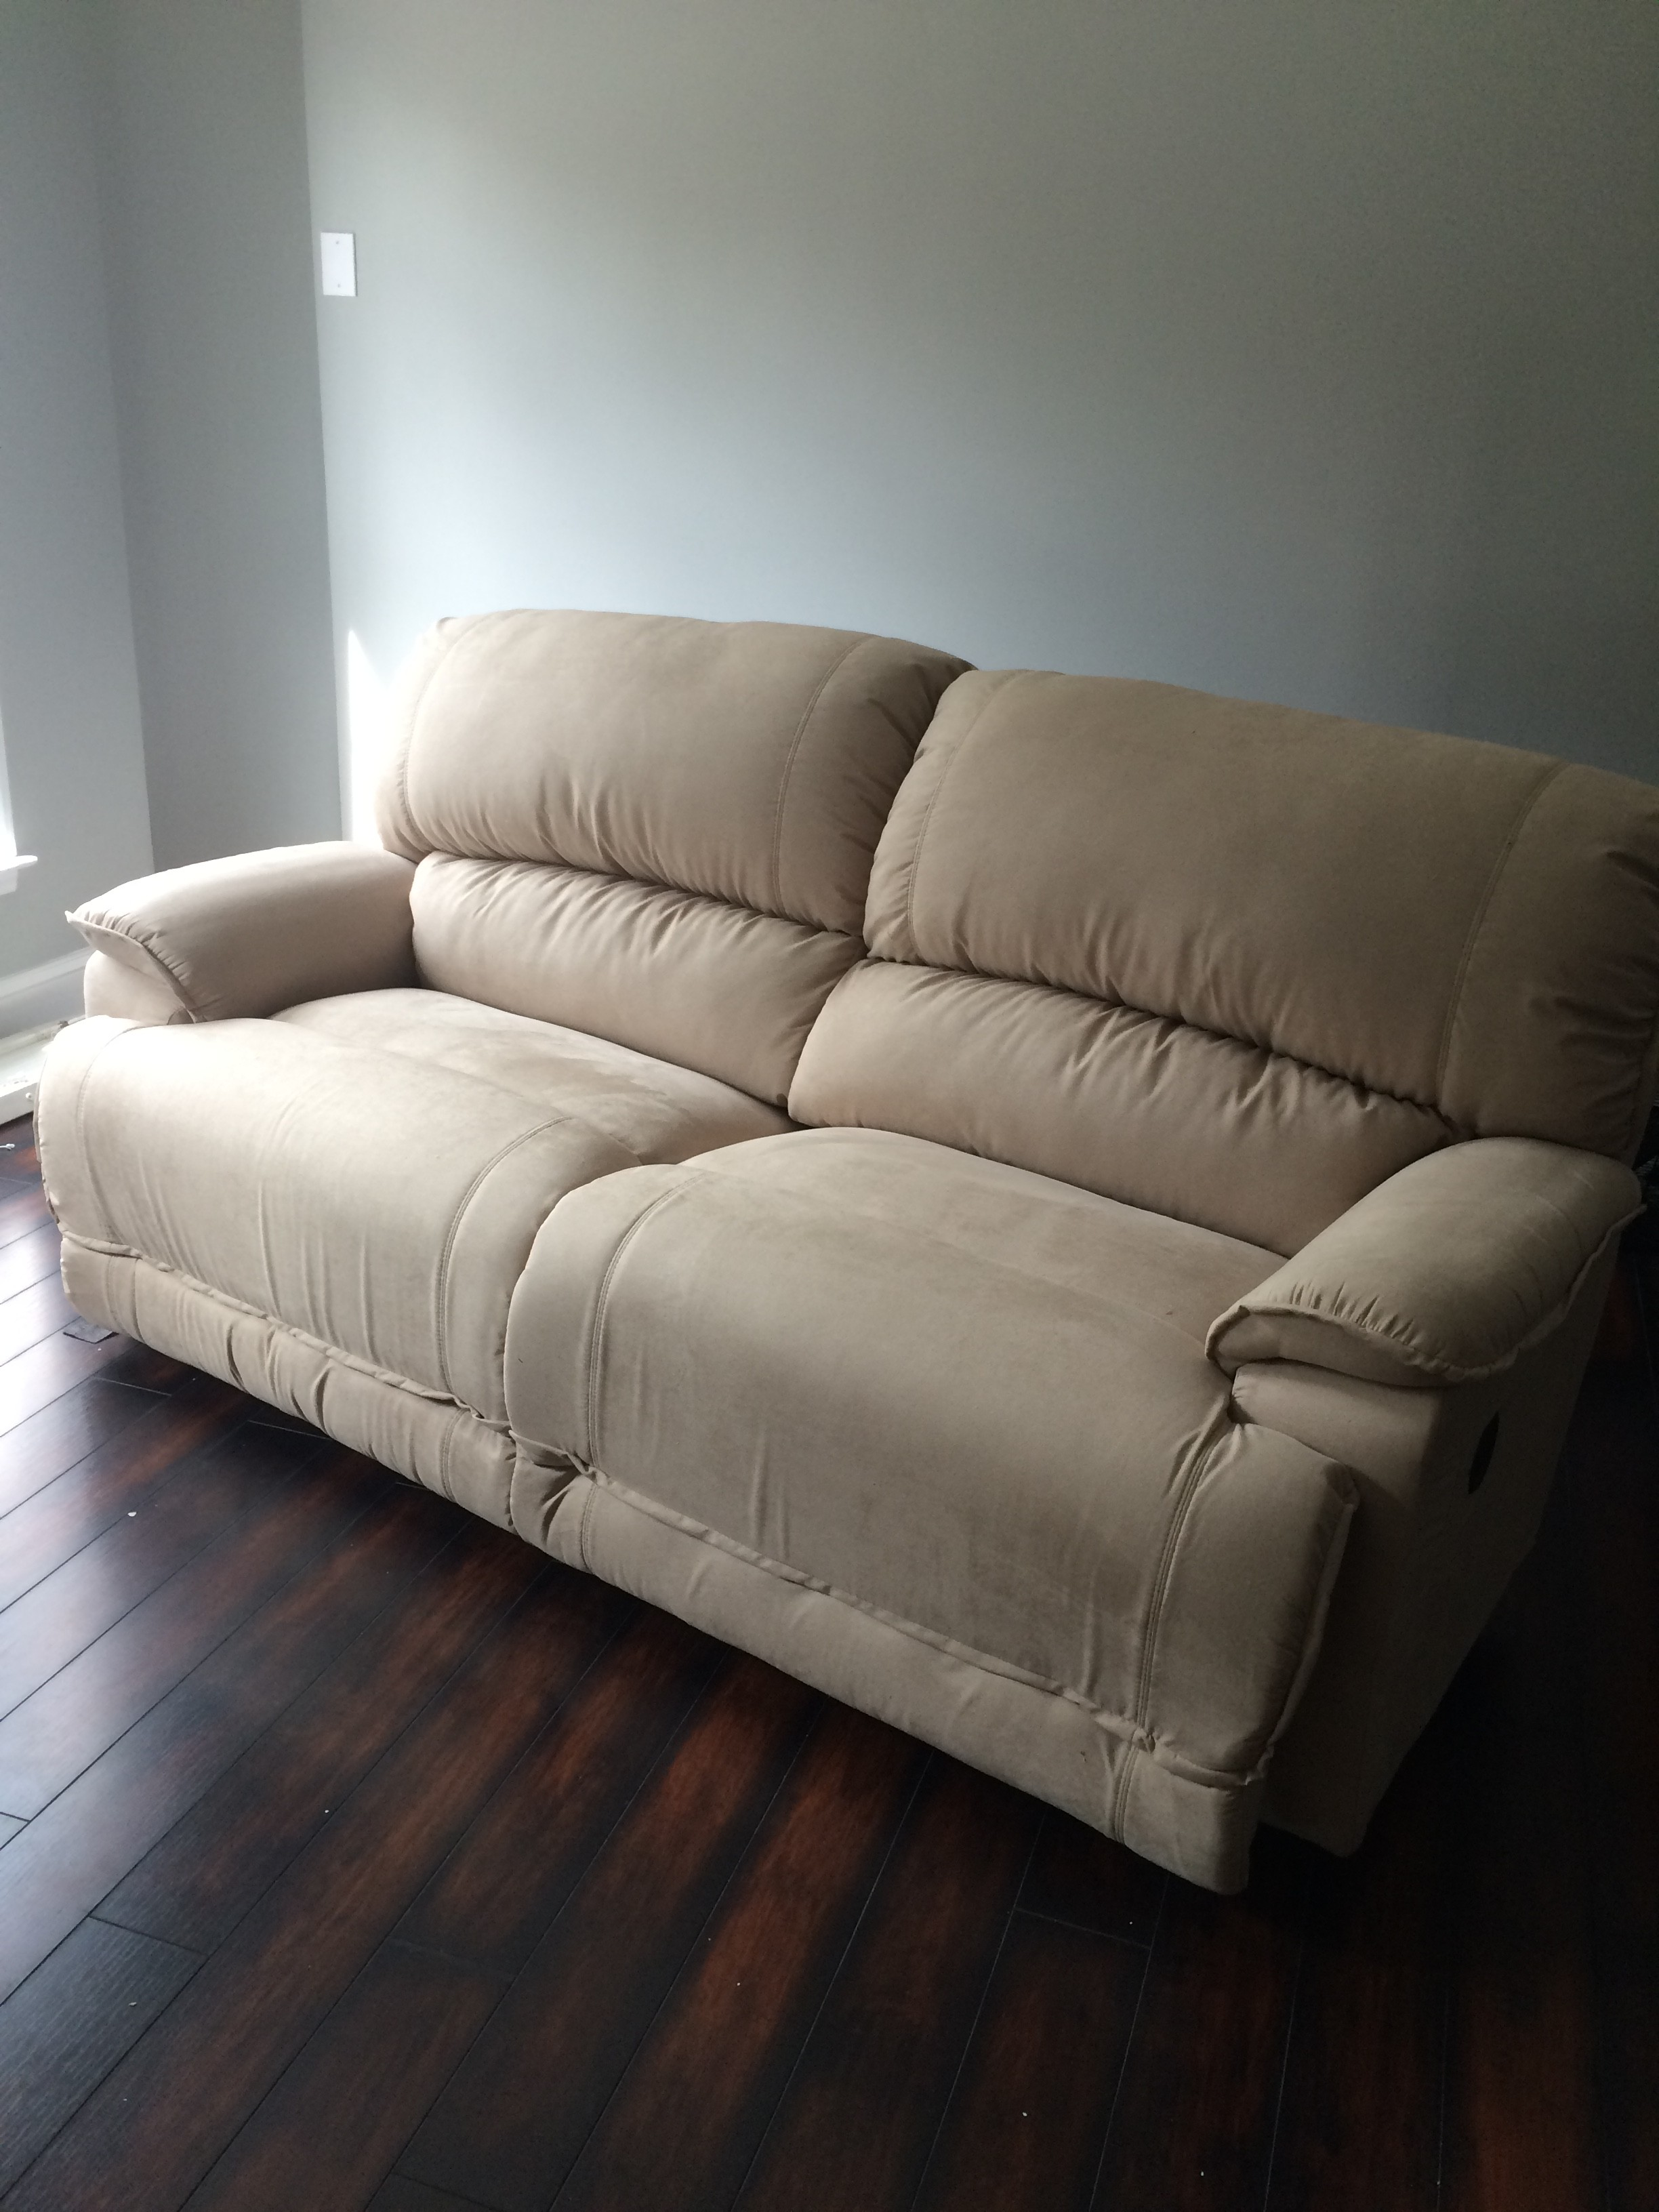 New La-Z-Boy couch